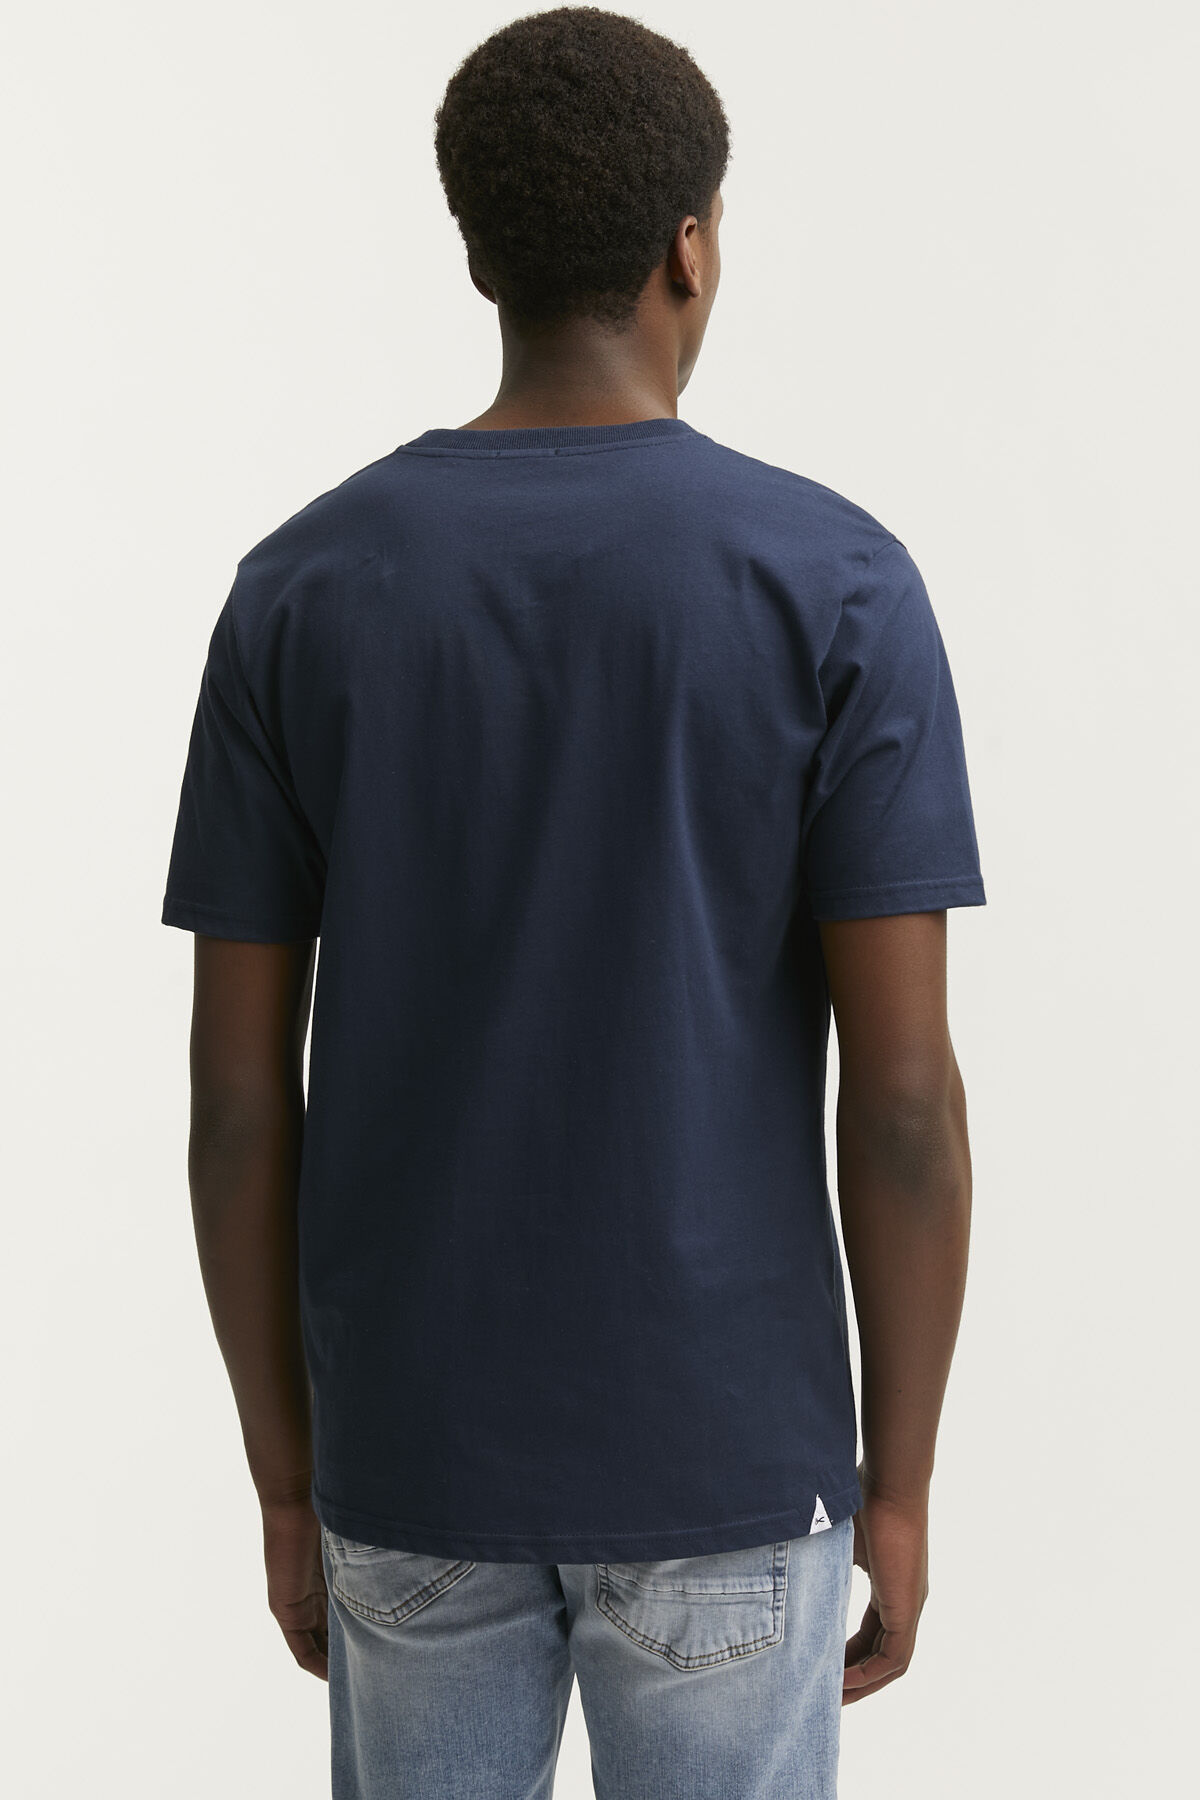 DENHAM INDIGO MONSTER PATCH TEE  Heavy Core Jersey - Regular Fit